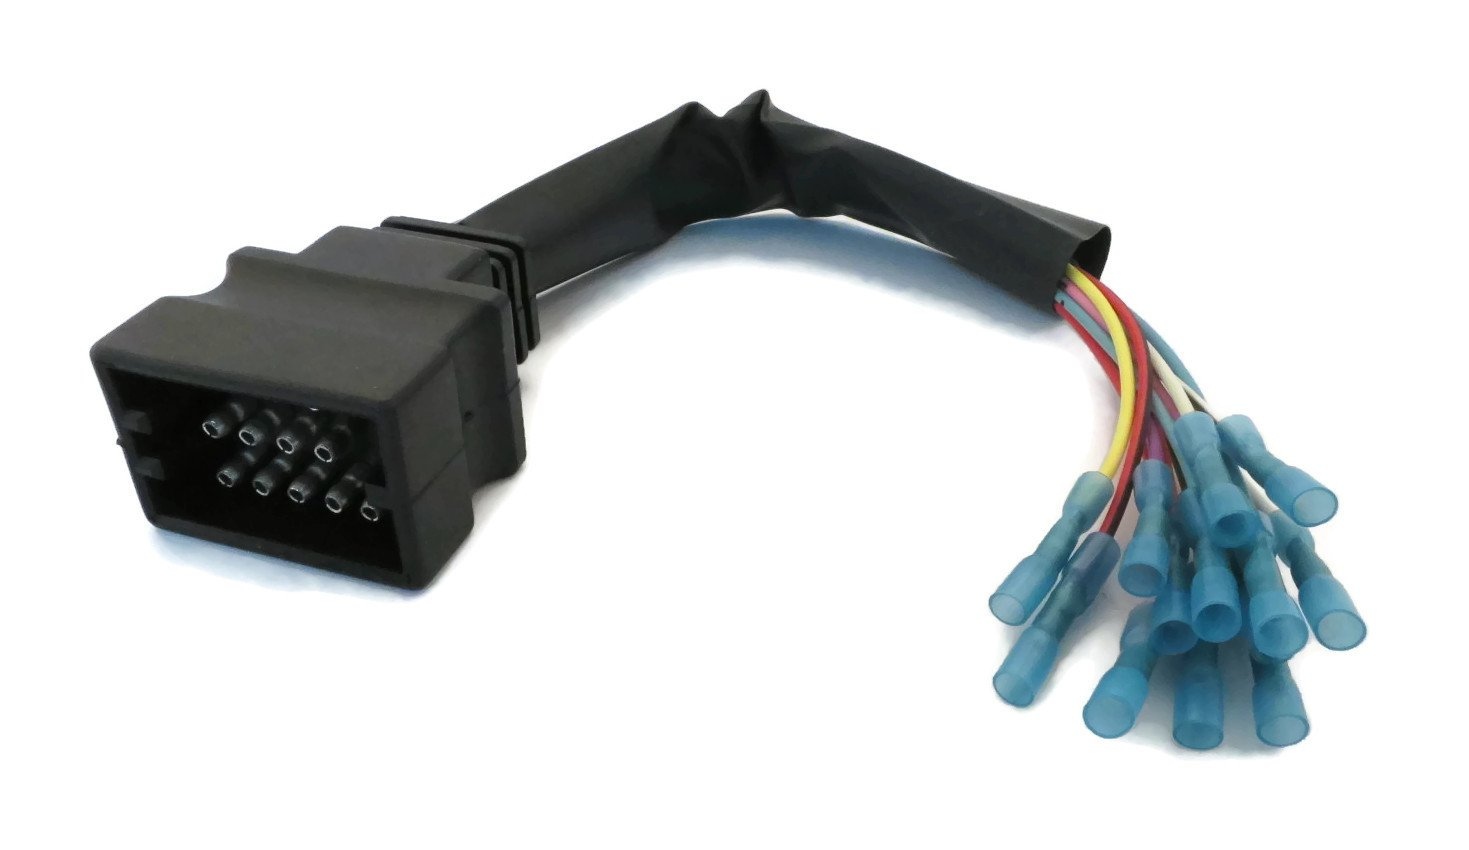 61IwZON%2BxQL._SL1469_ amazon com snow plow wiring harness repair kit (plow side how to repair a wiring harness at gsmportal.co